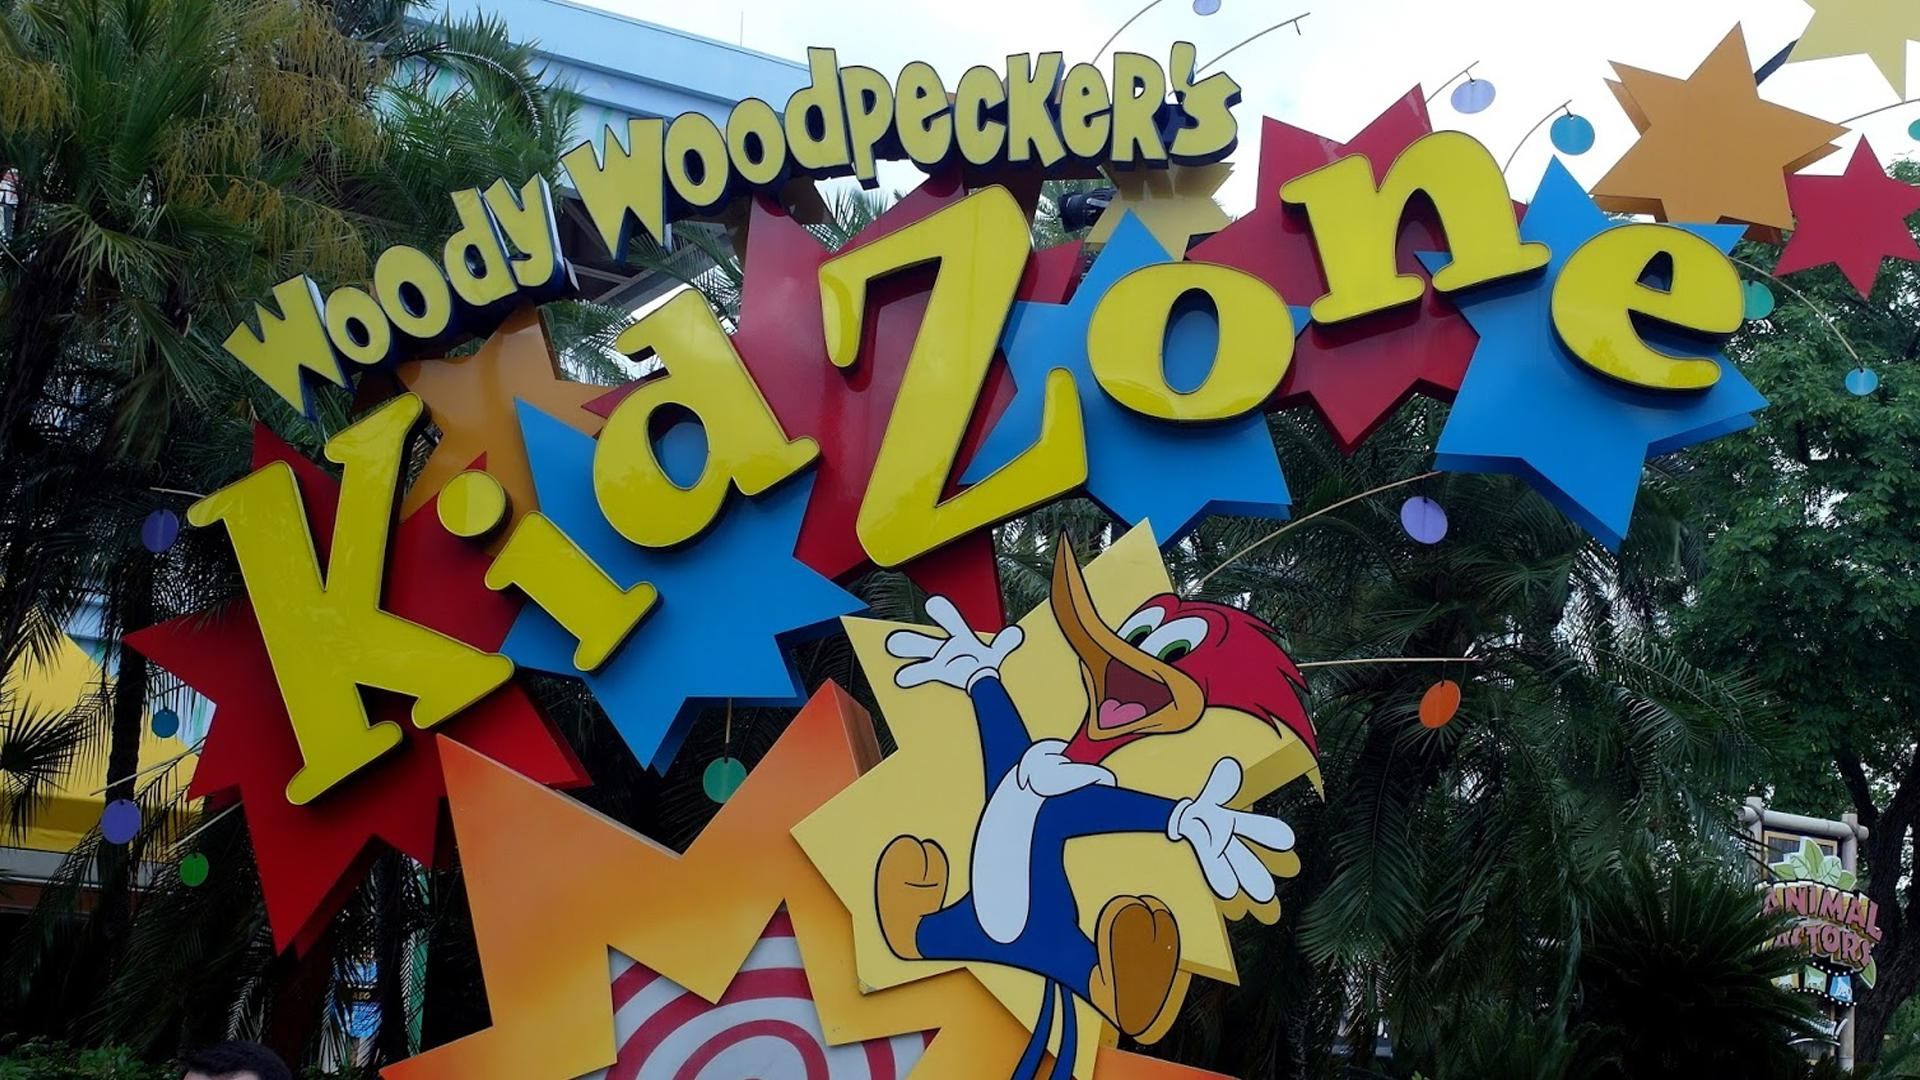 Woody Woodpecker's Kidzone - Orlando Tickets, Hotels, Packages